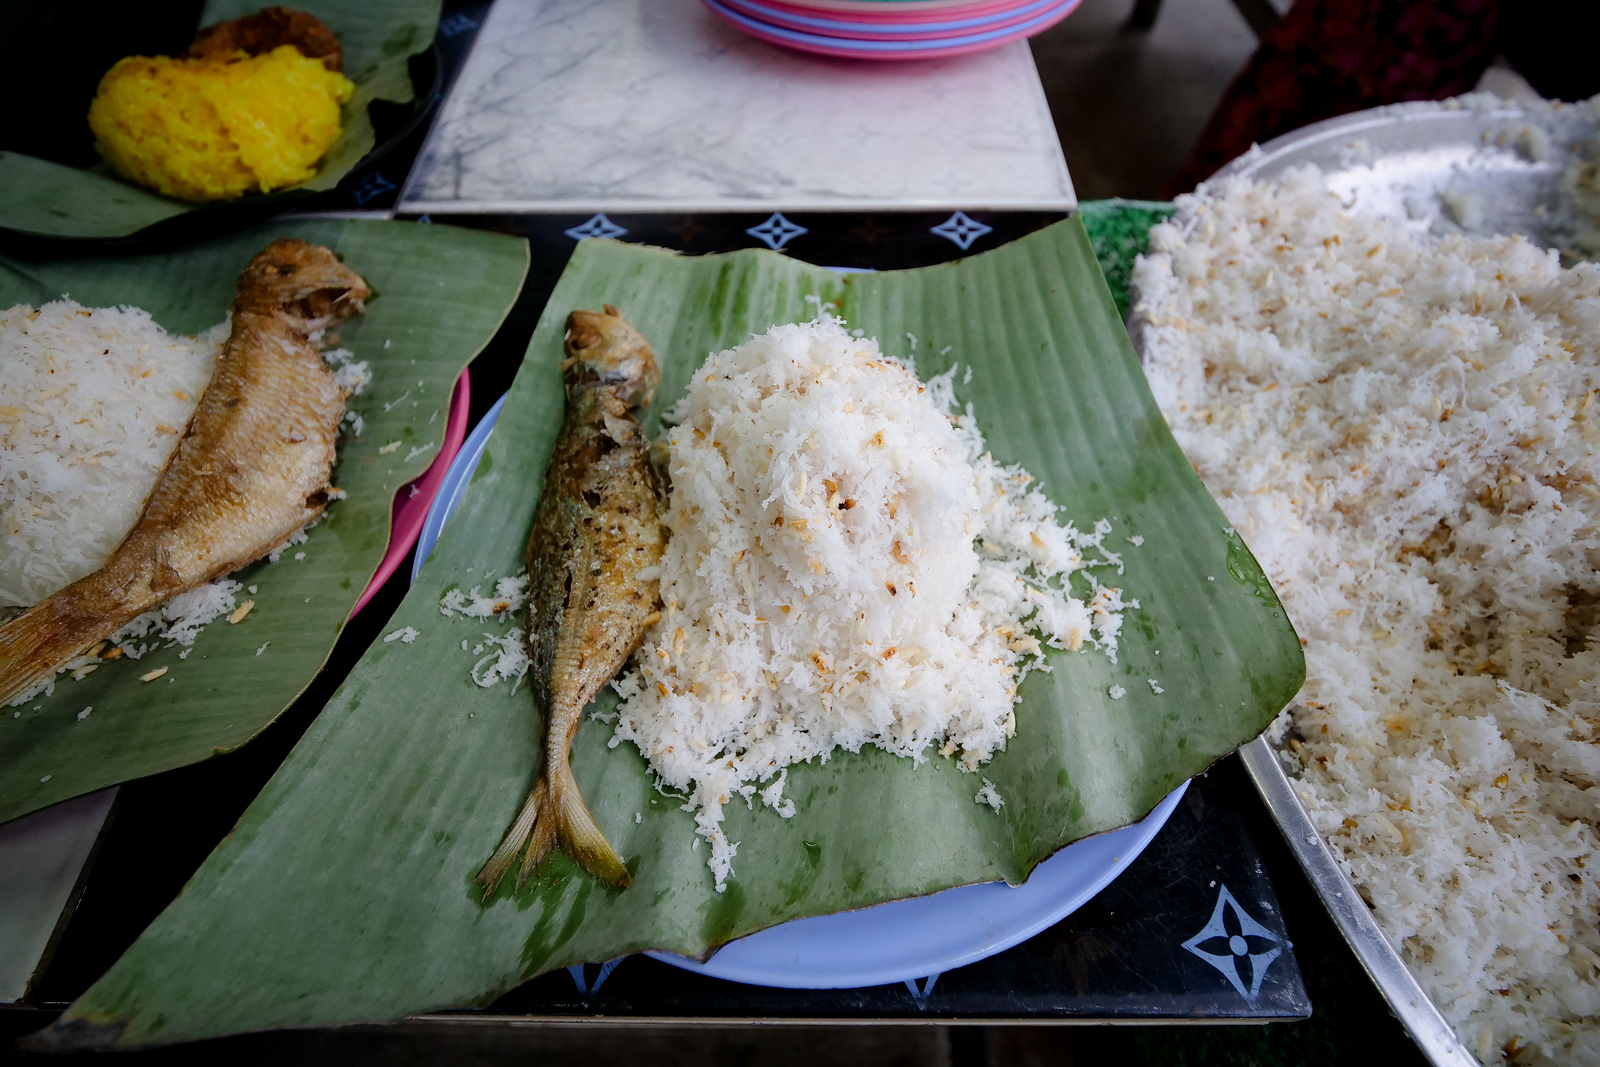 A fried fish is served on the side of every small mound of coconut shred filled rice